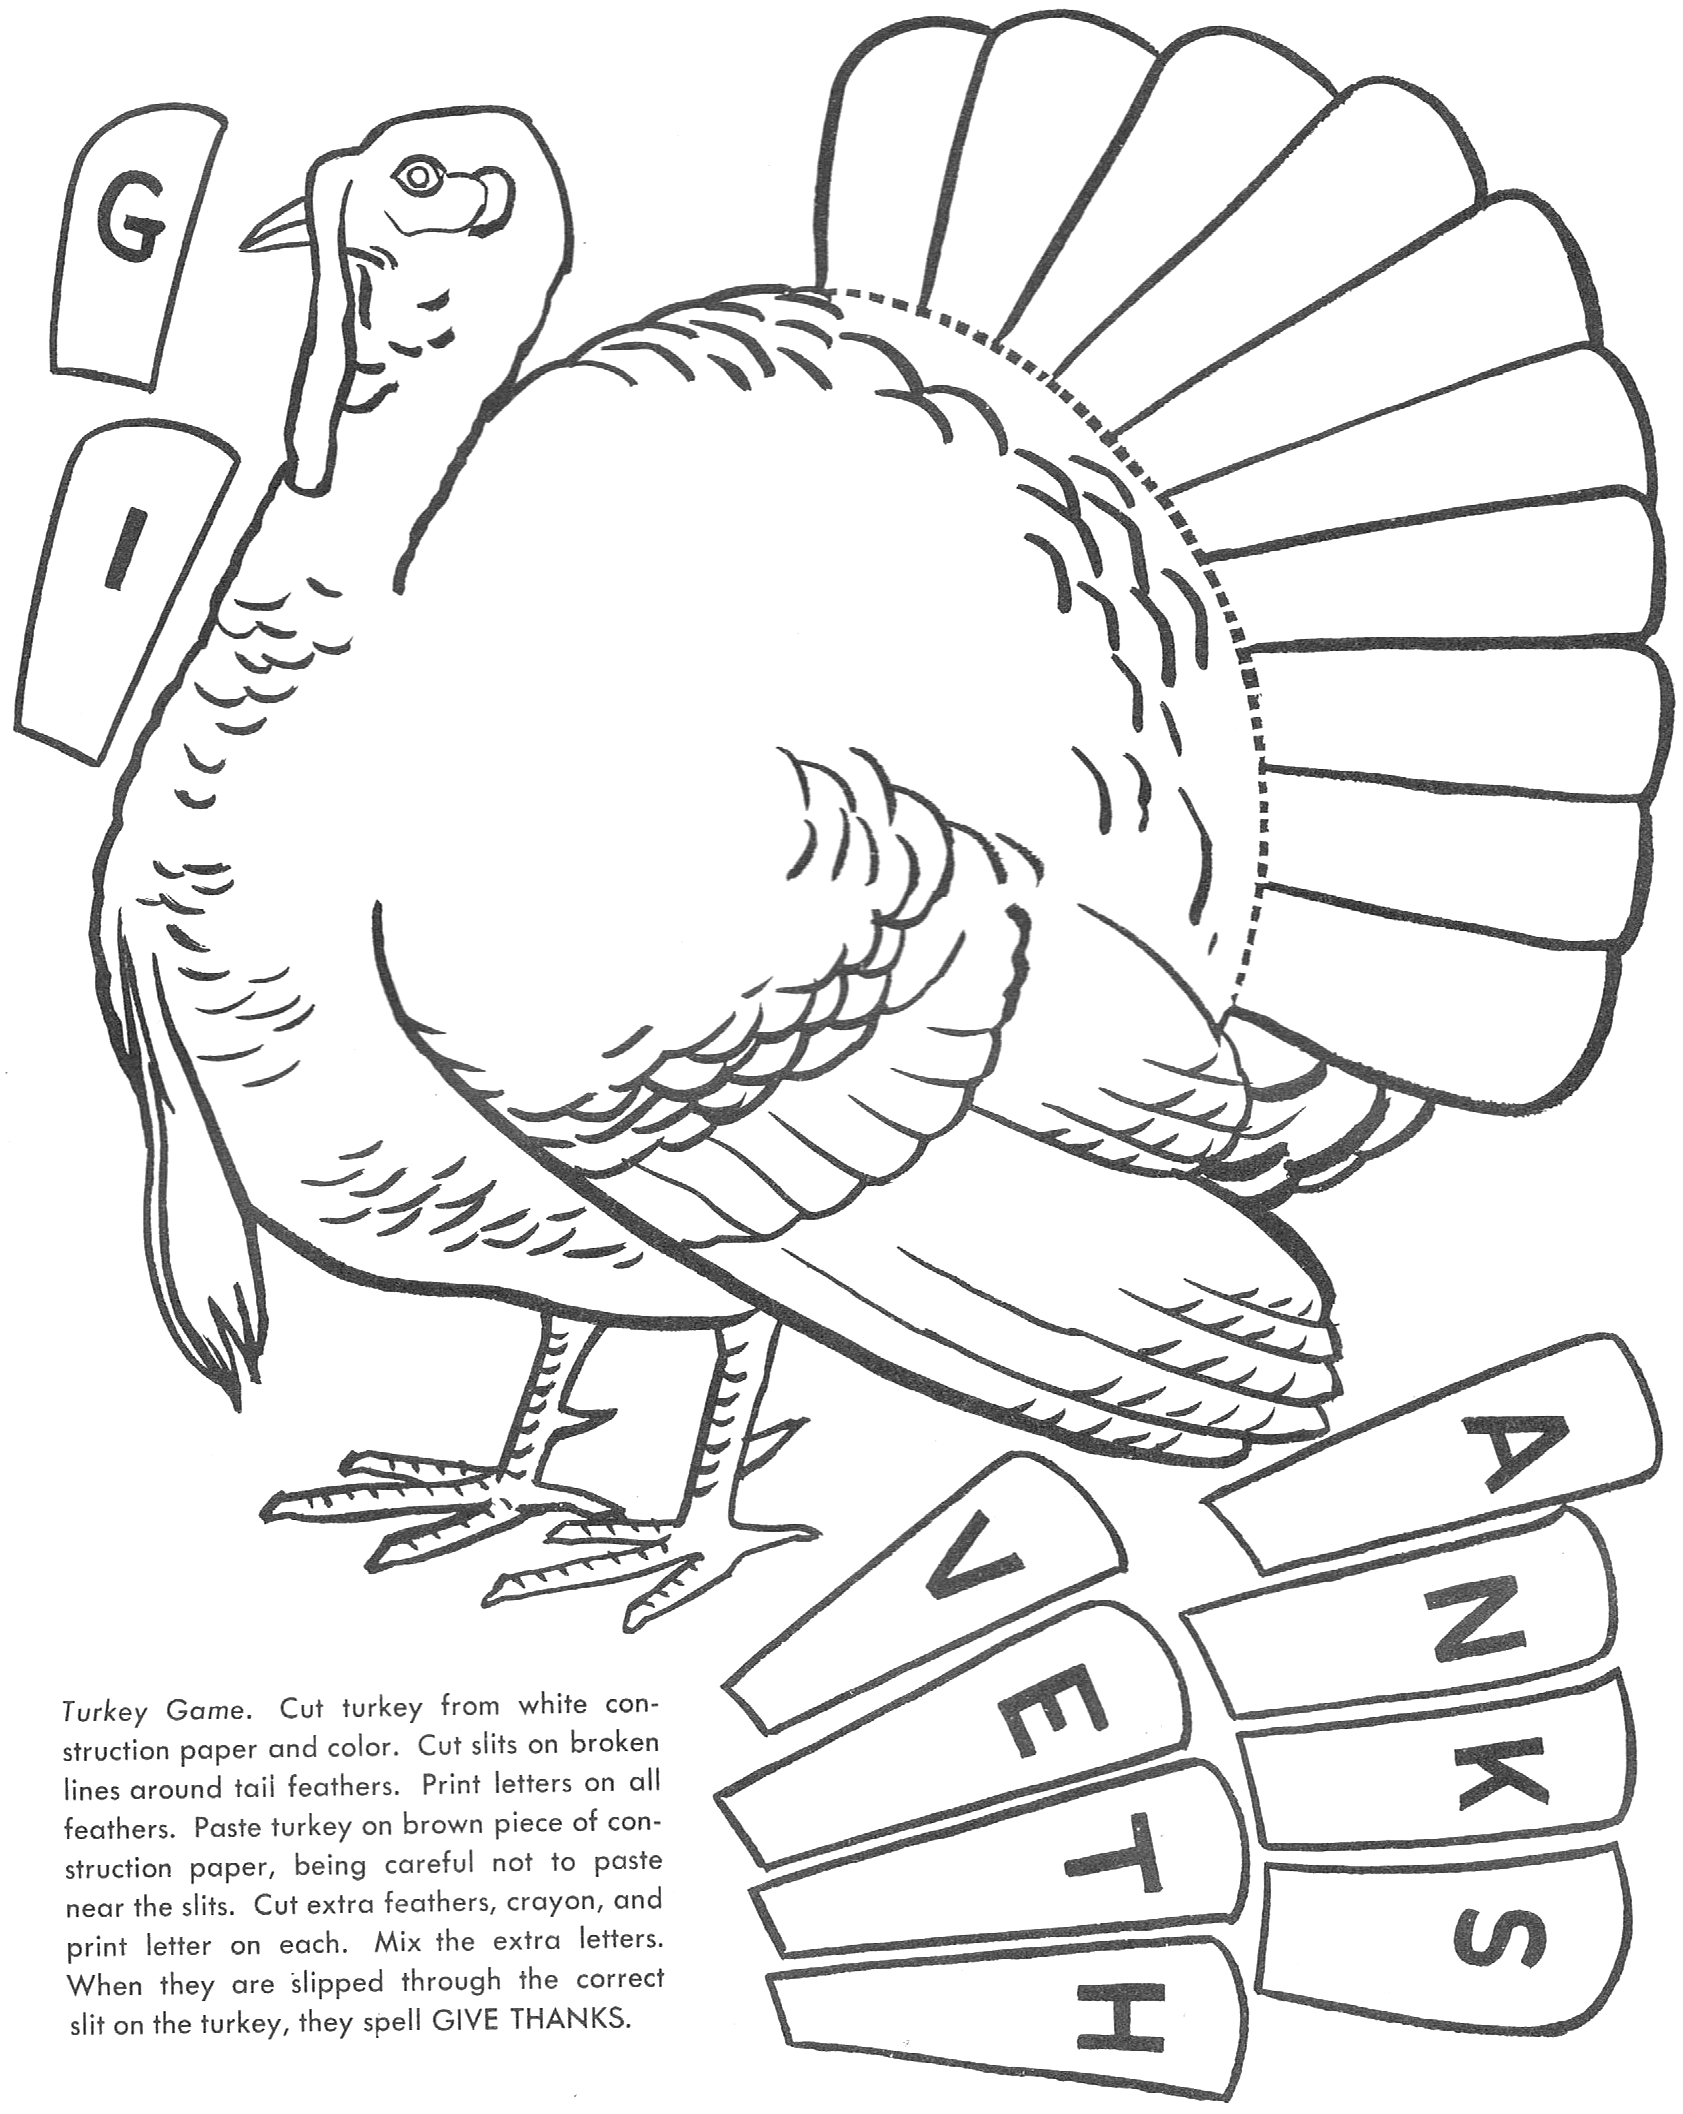 1683x2114 Cool Turkey Drawing Template Awesome Ideas For You